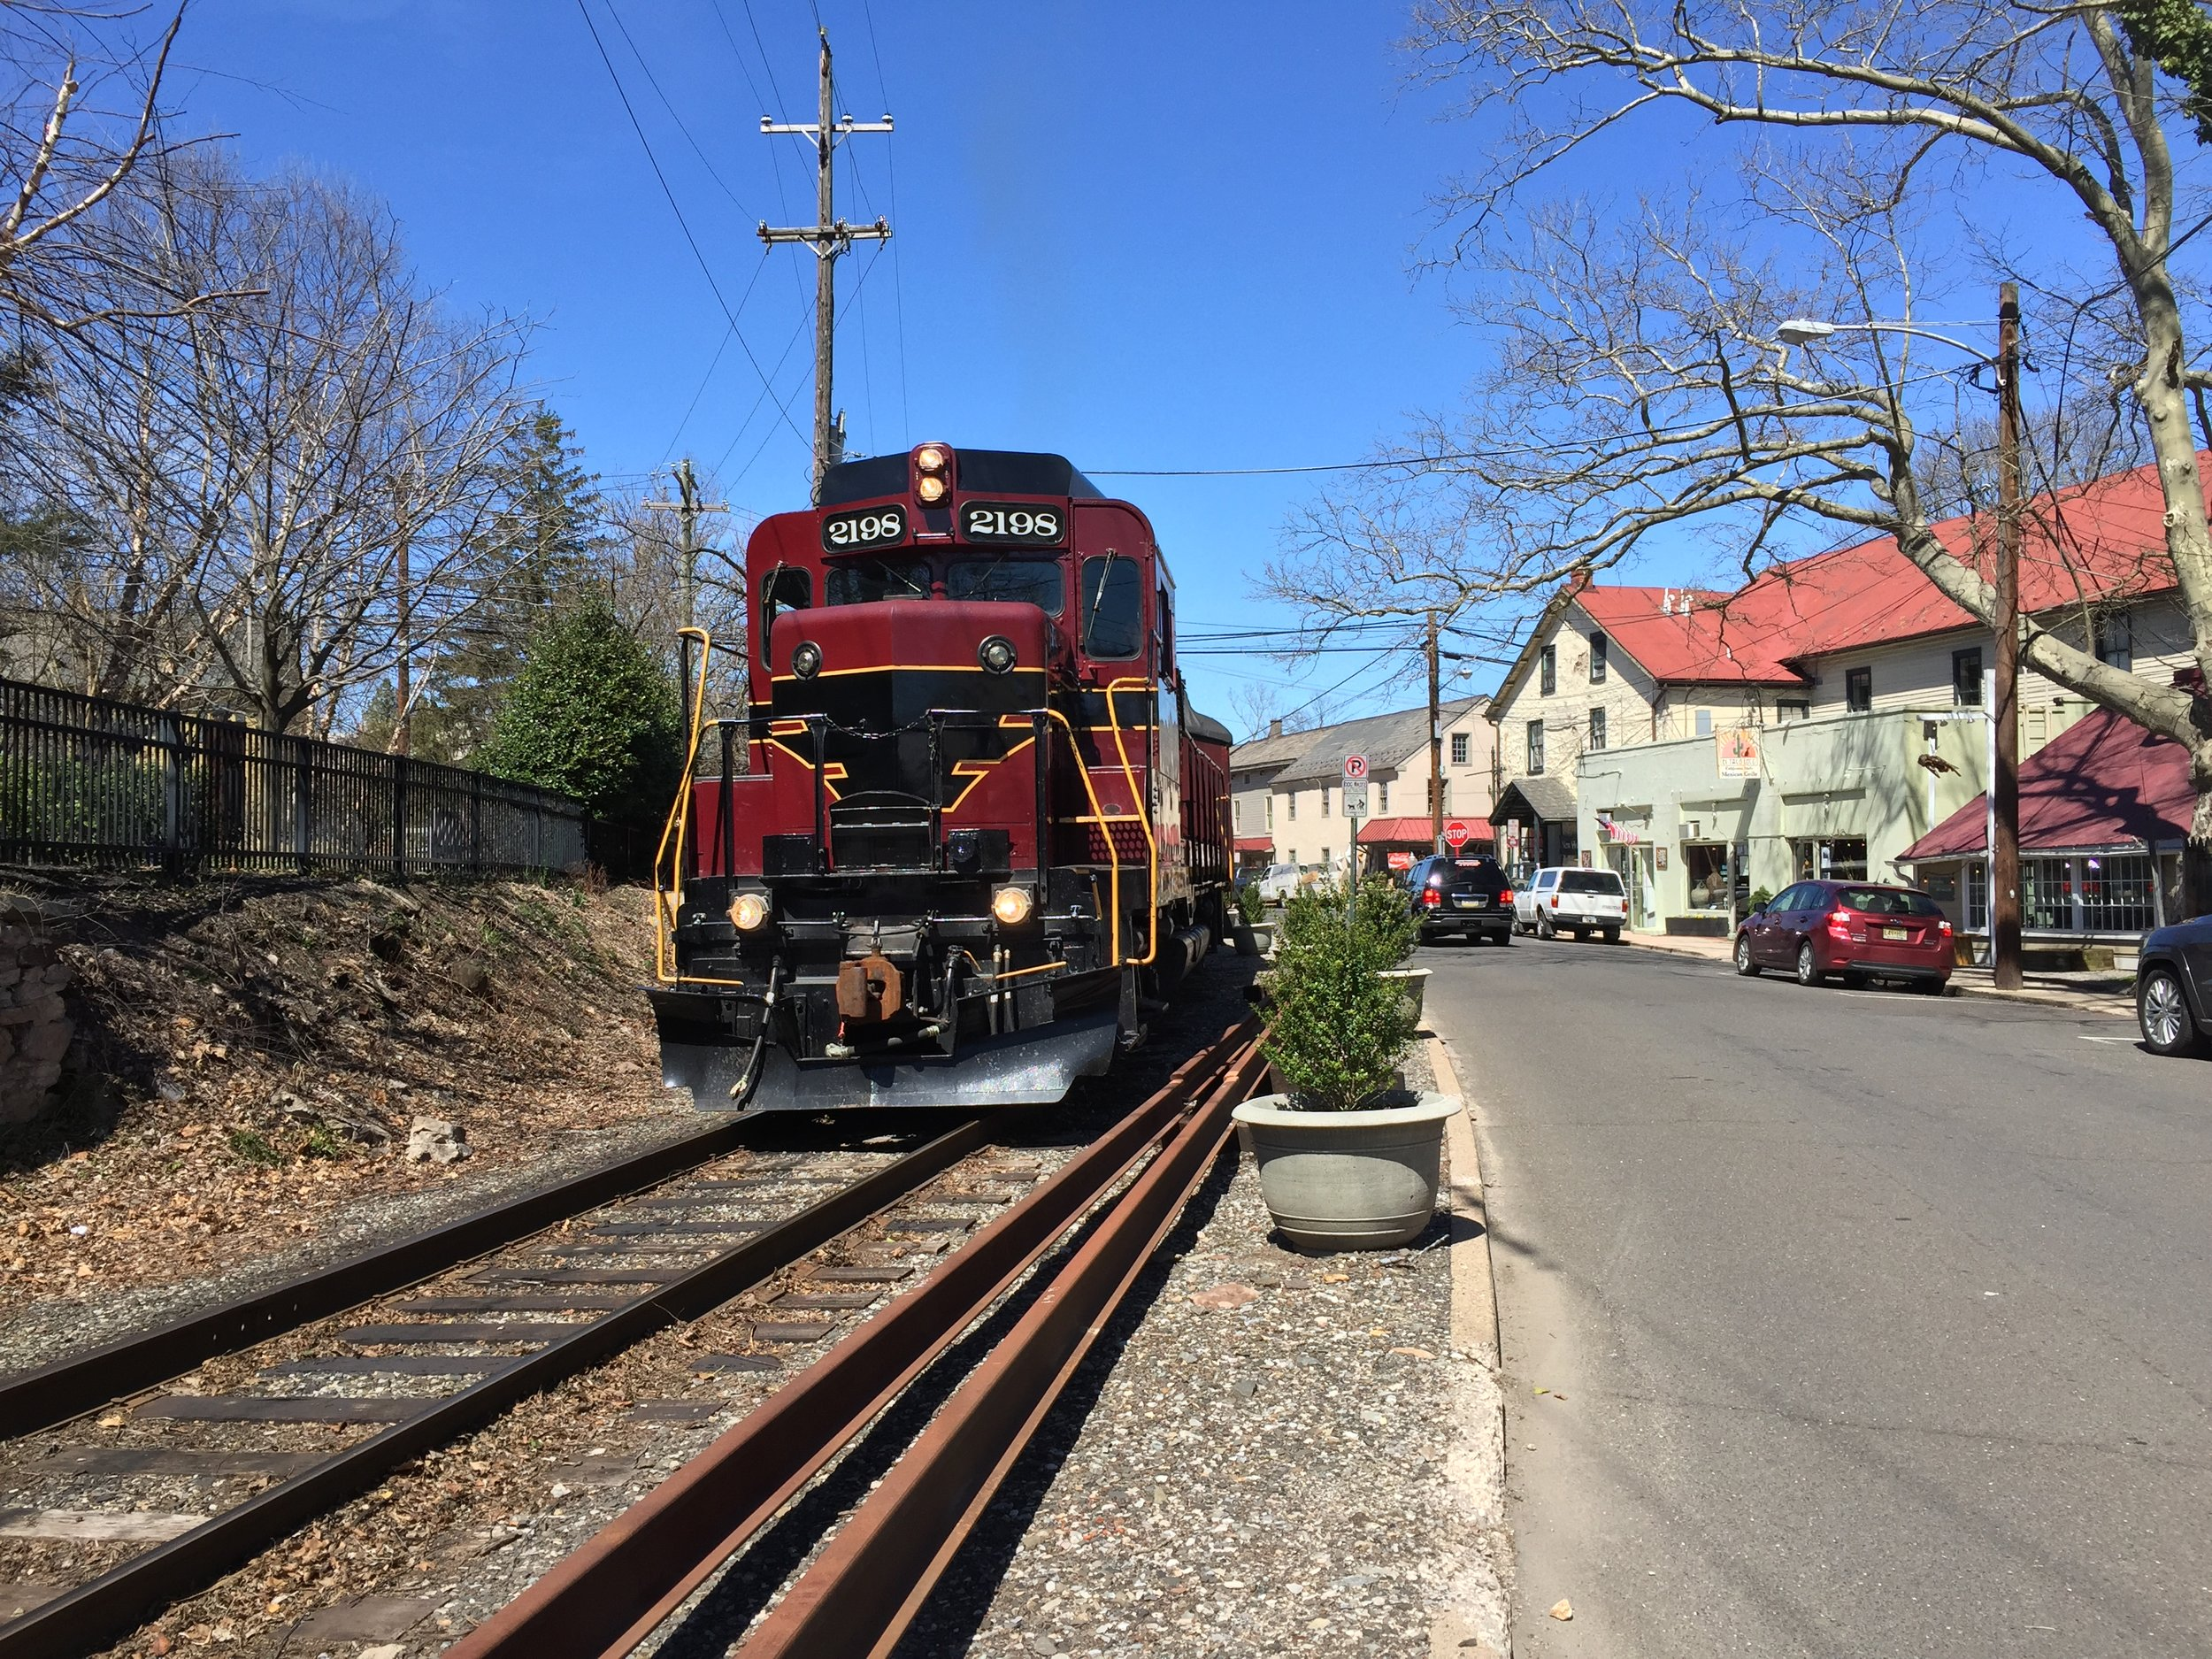 Our turn north included a passing by the locomotive from the New Hope- Solebury train station.